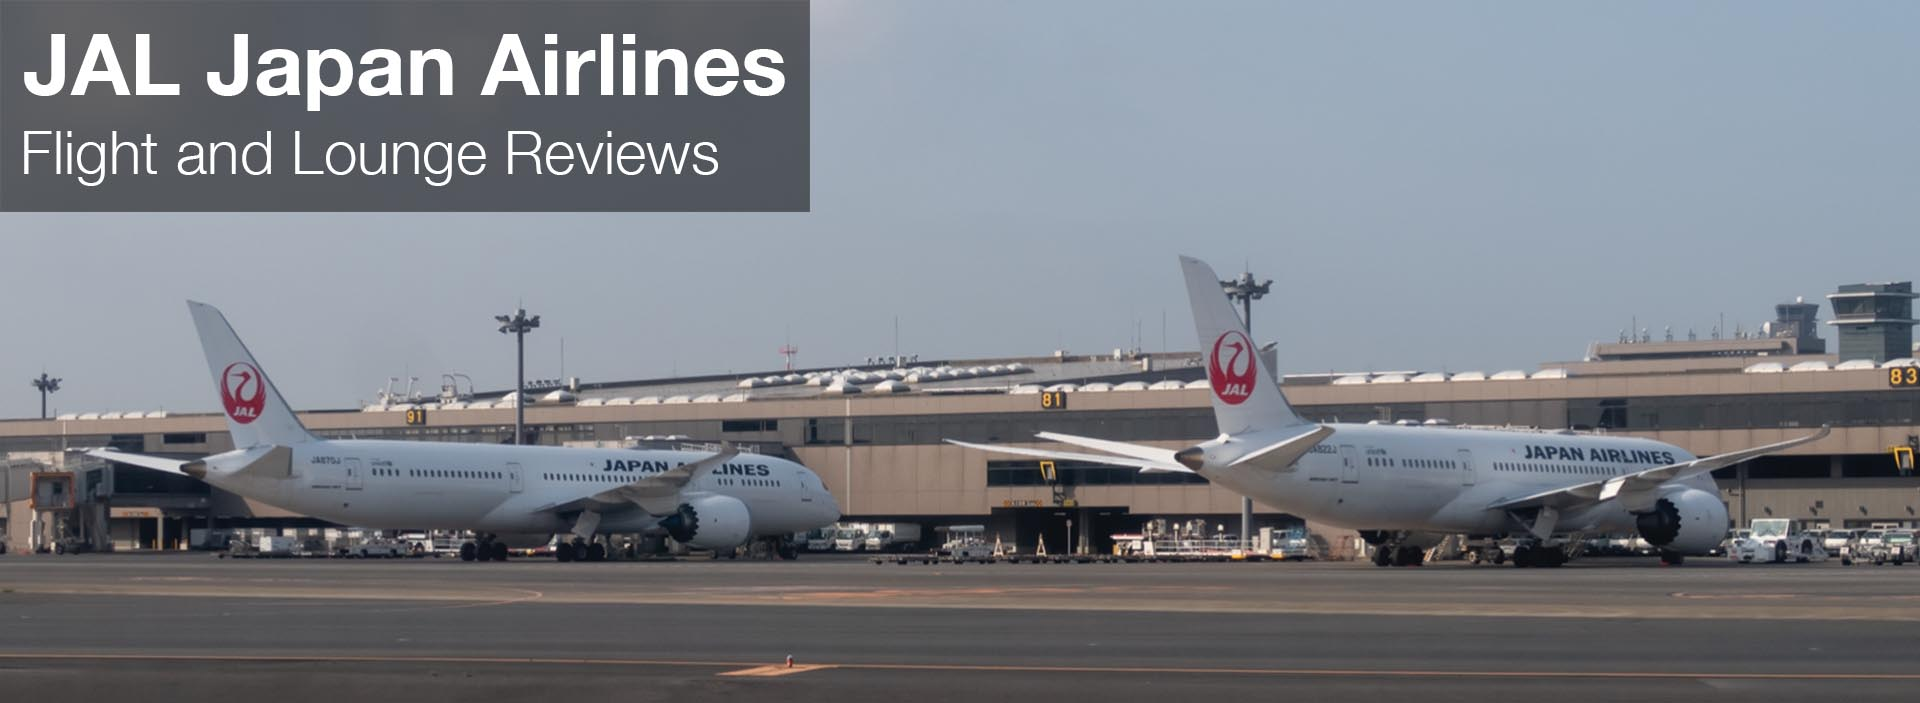 JAL Japan Airlines: Flight and Lounge Reviews (and Resources)